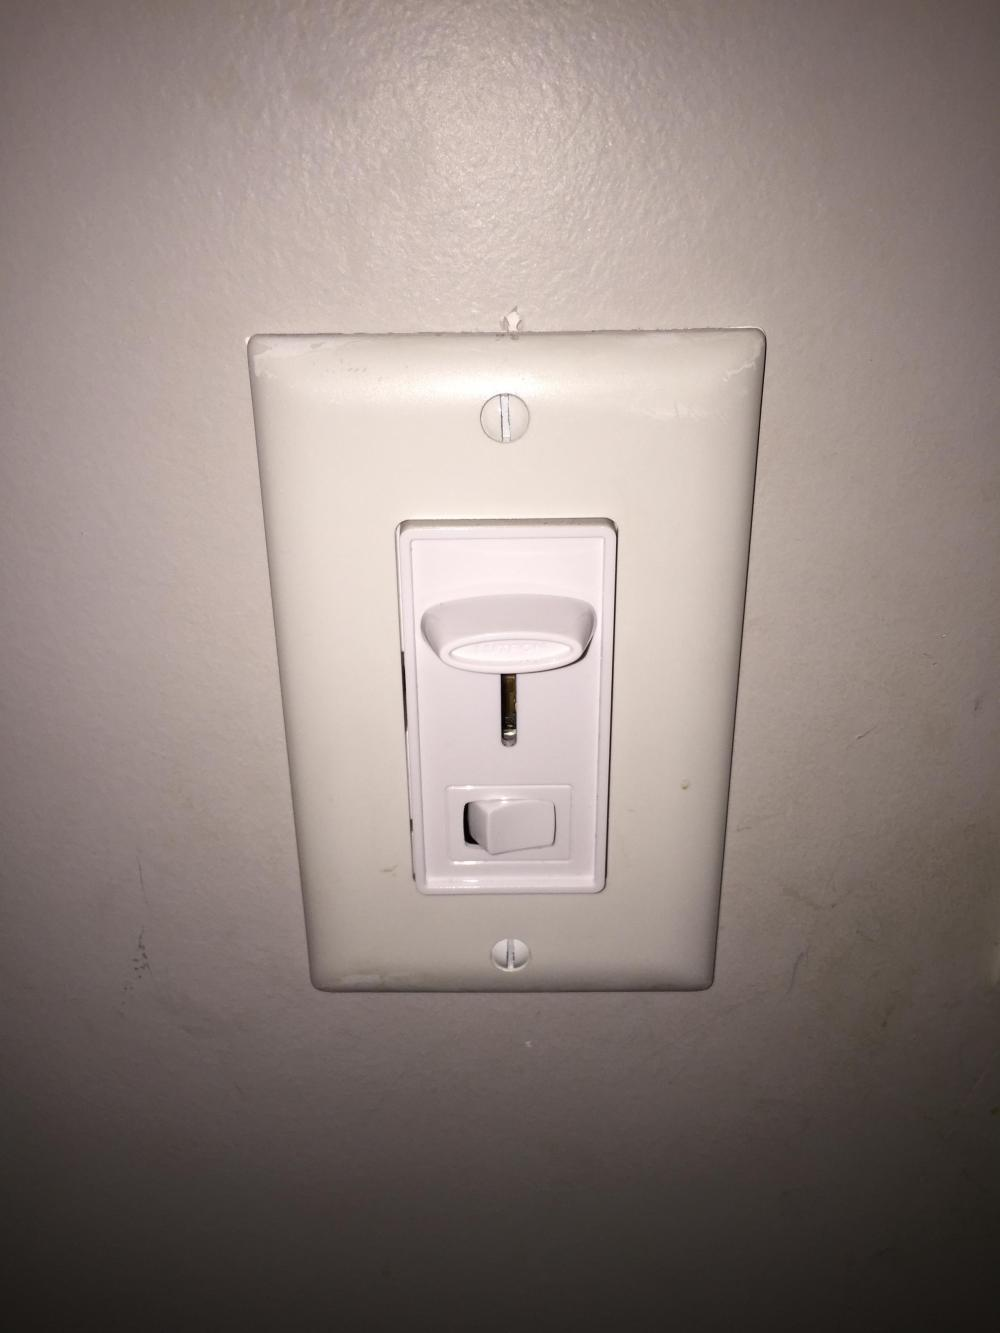 medium resolution of help wiring ceiling fan with dimmer switch home improvement stack help wiring ceiling fan with dimmer